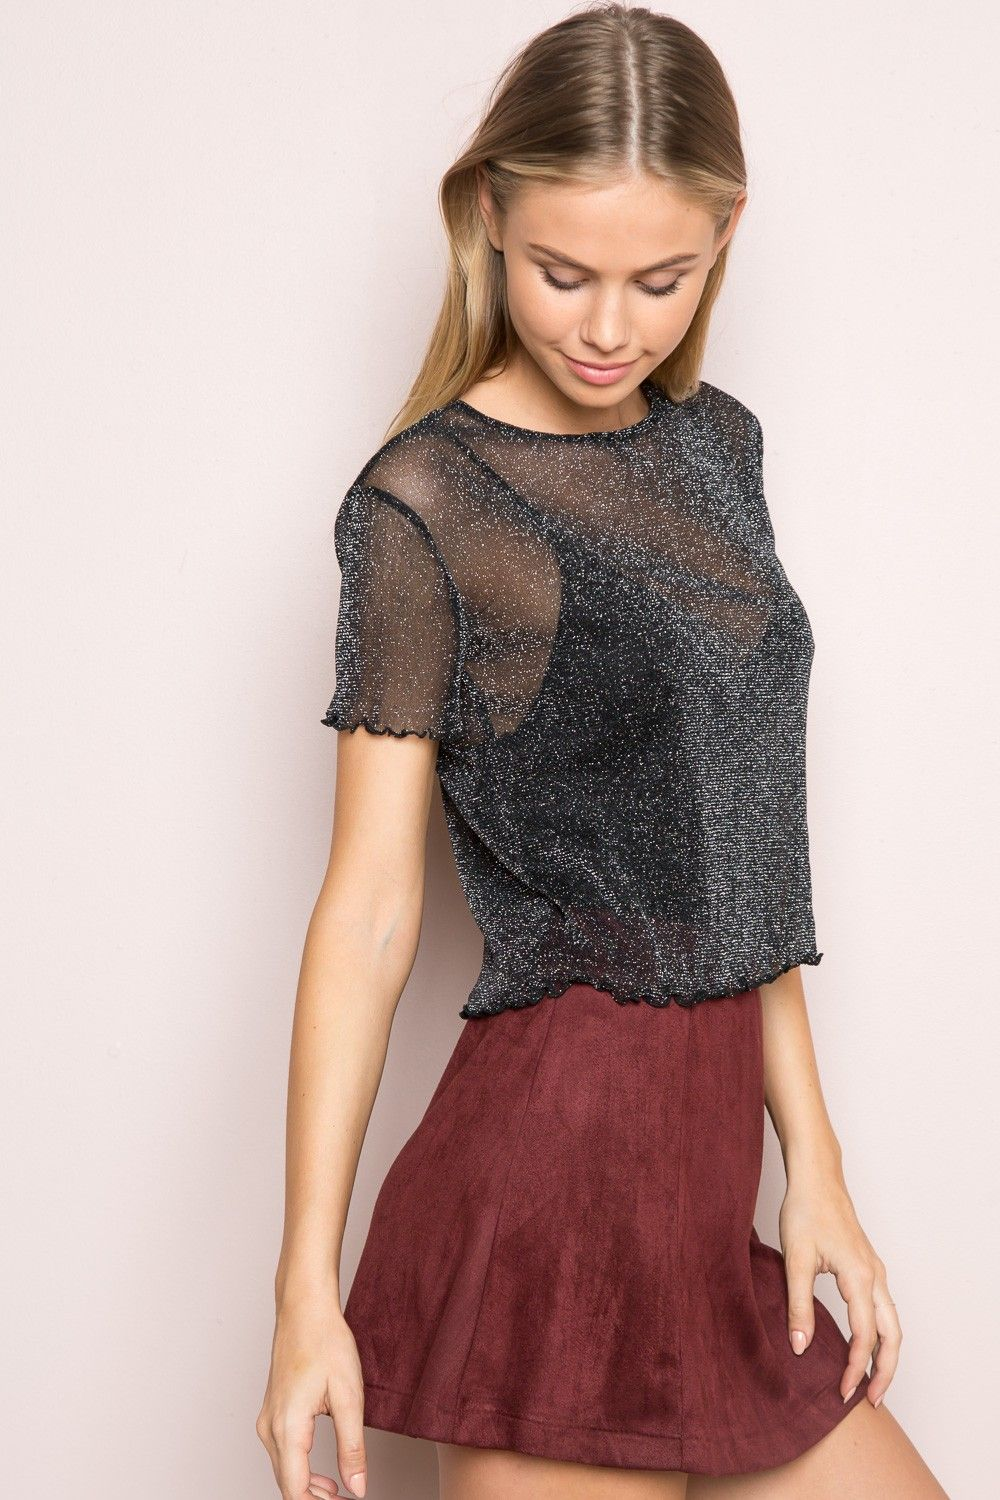 Brandy Melville Porter Glitter Top Clothing Glitter Tops Outfit High Tops Outfit